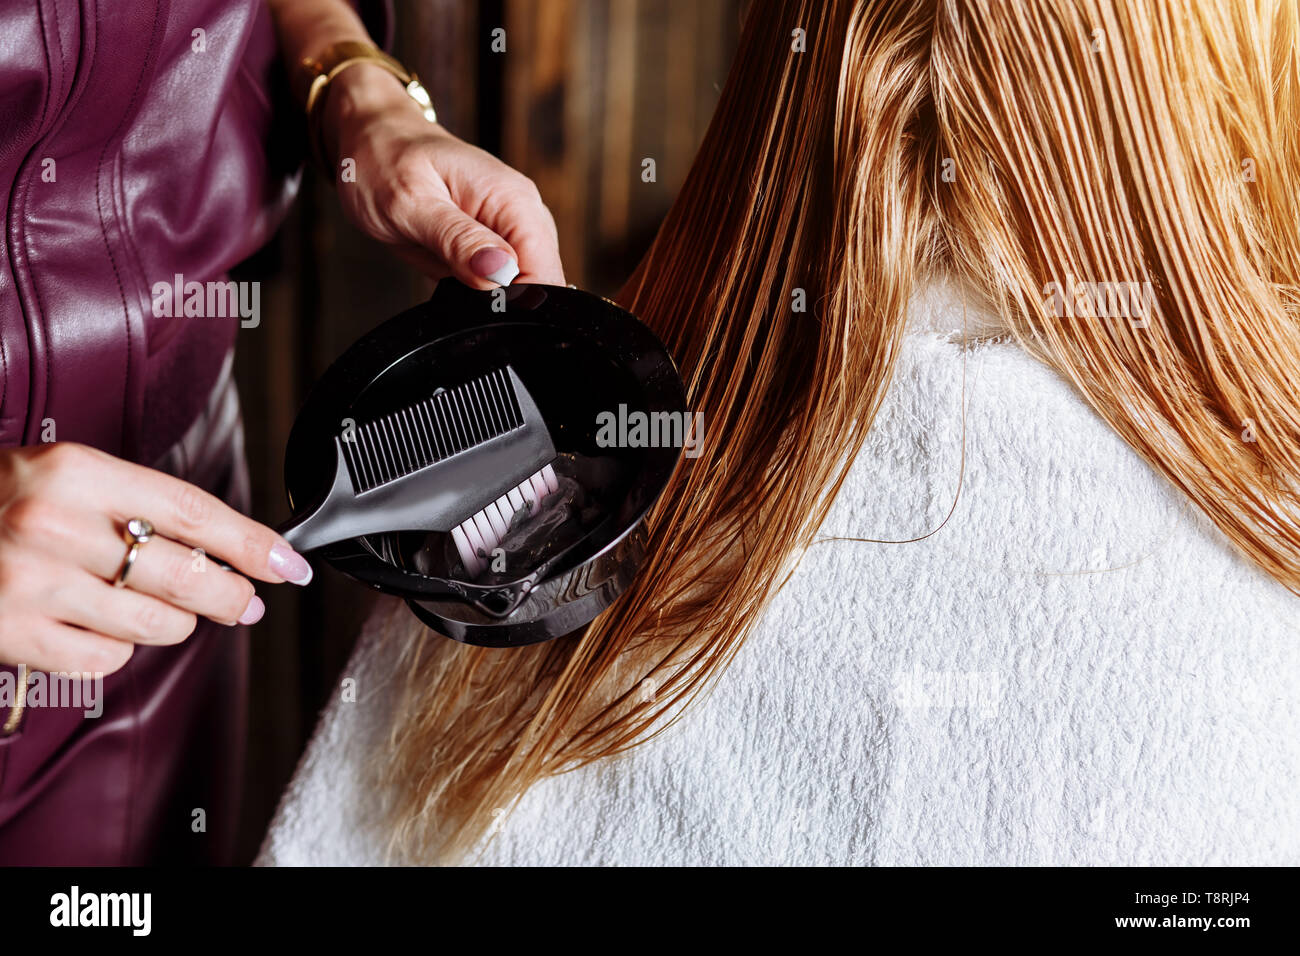 Professional hairdresser brushing wet hair of beautiful young blond woman before dyeing hair. Hair care products, health and beauty. Closeup photo of  - Stock Image